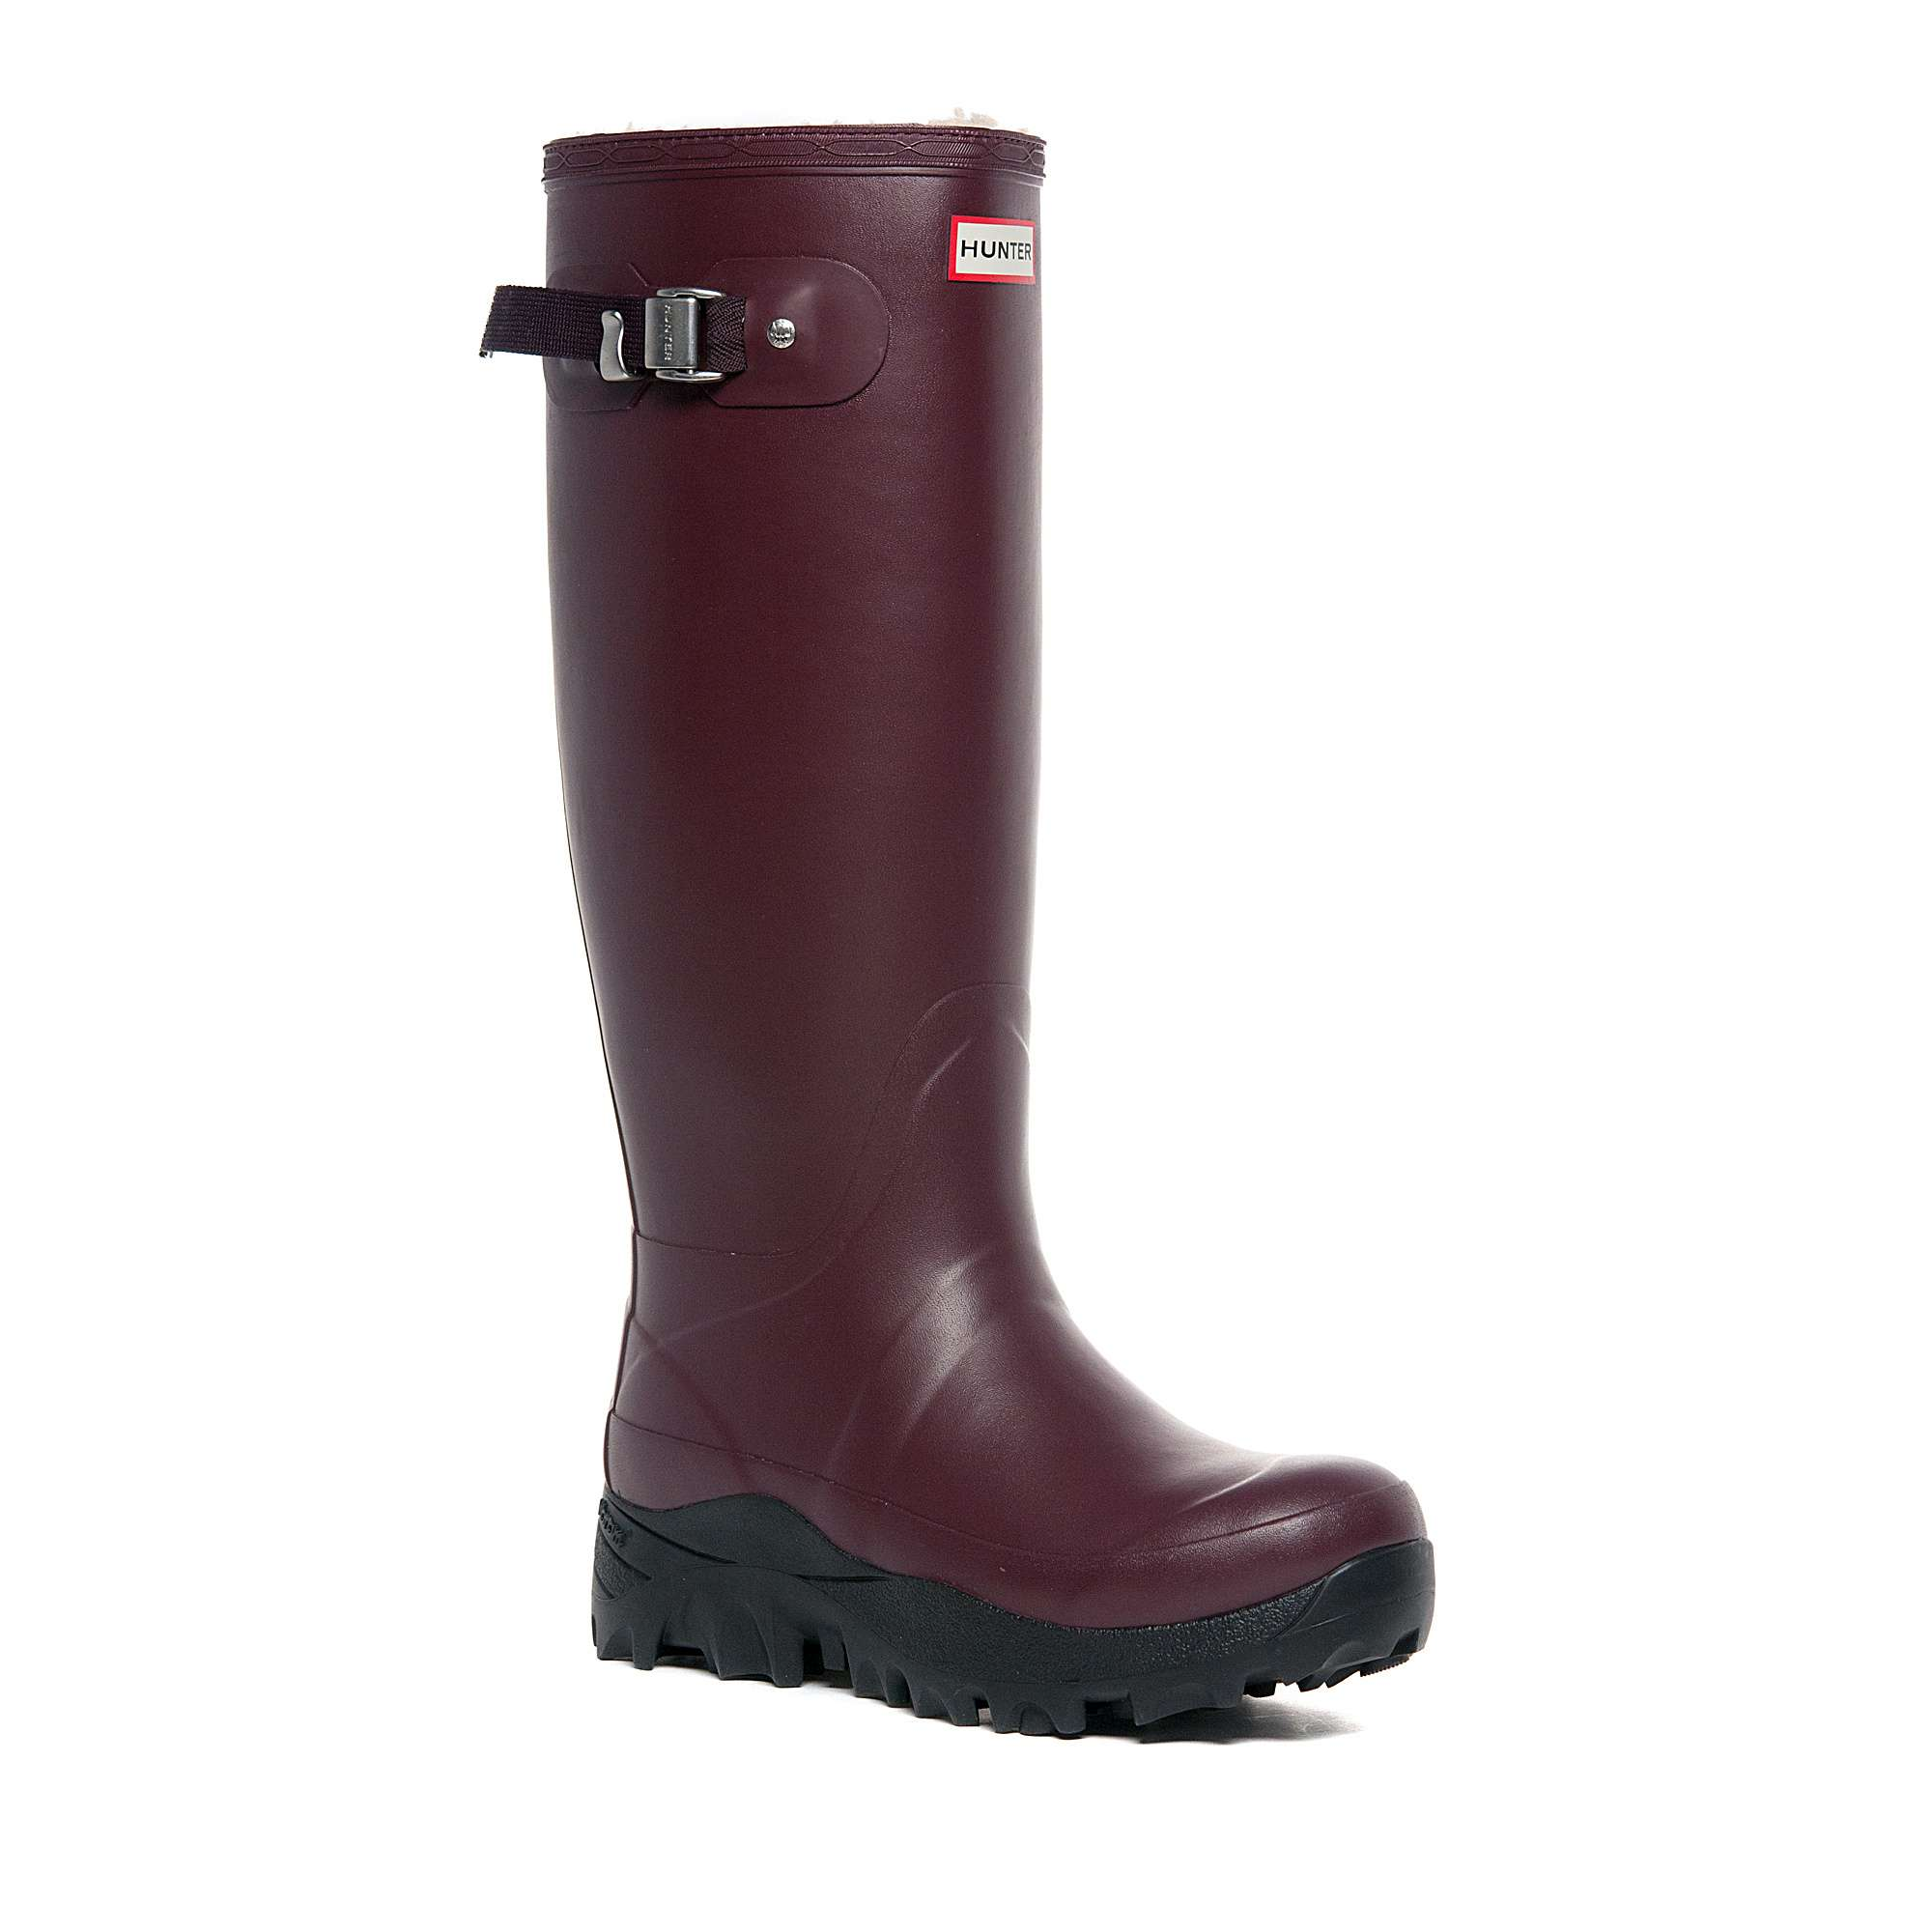 HUNTER Women's Tall Snow Wellies